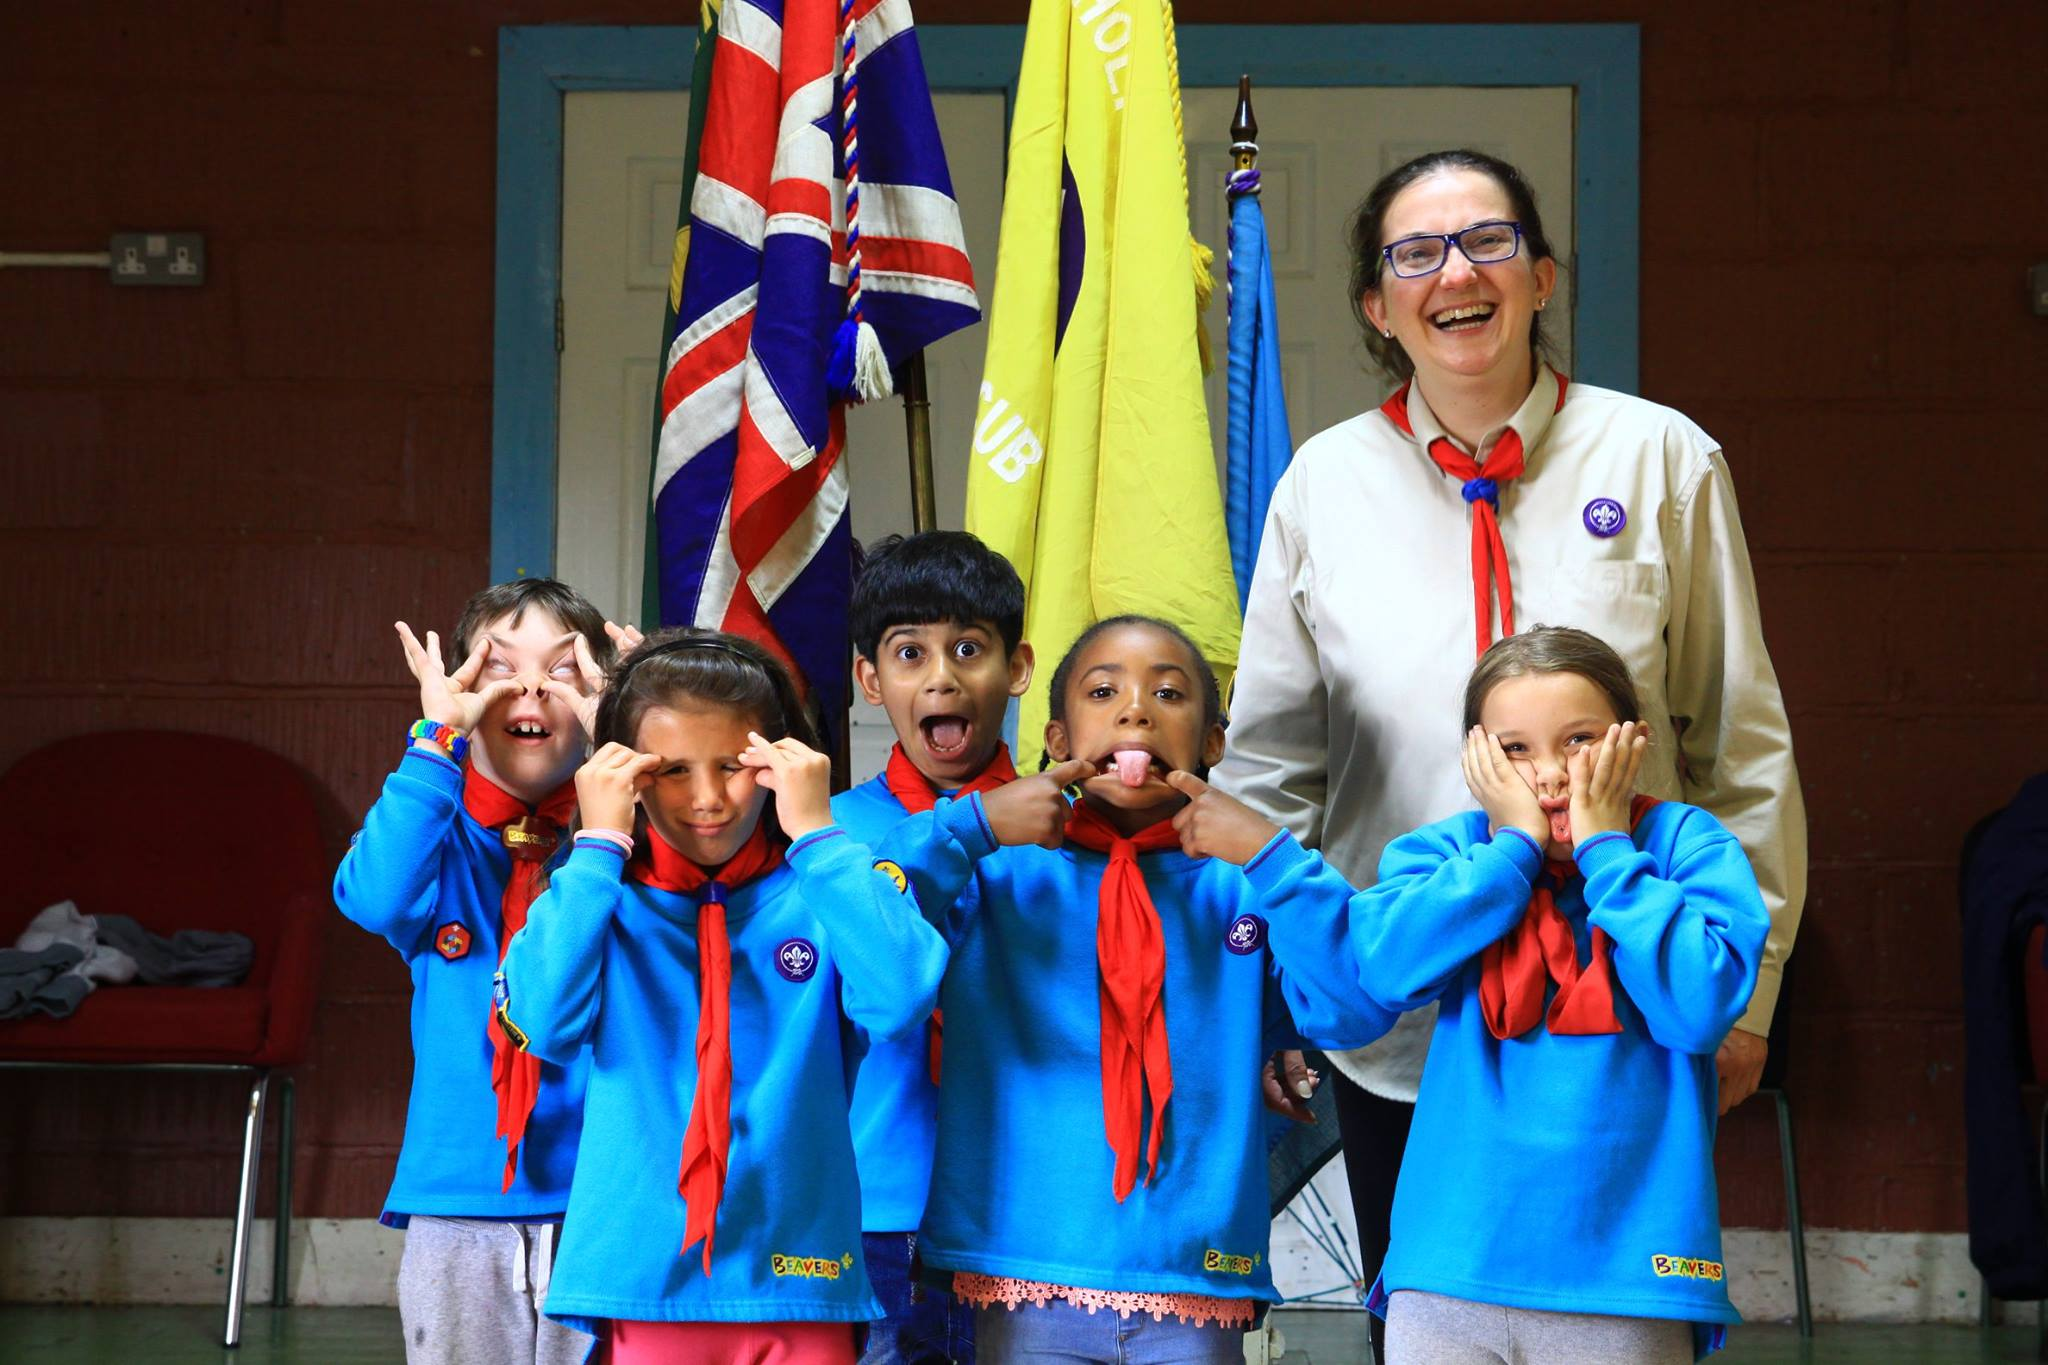 12th Northolt Beavers and Leaders